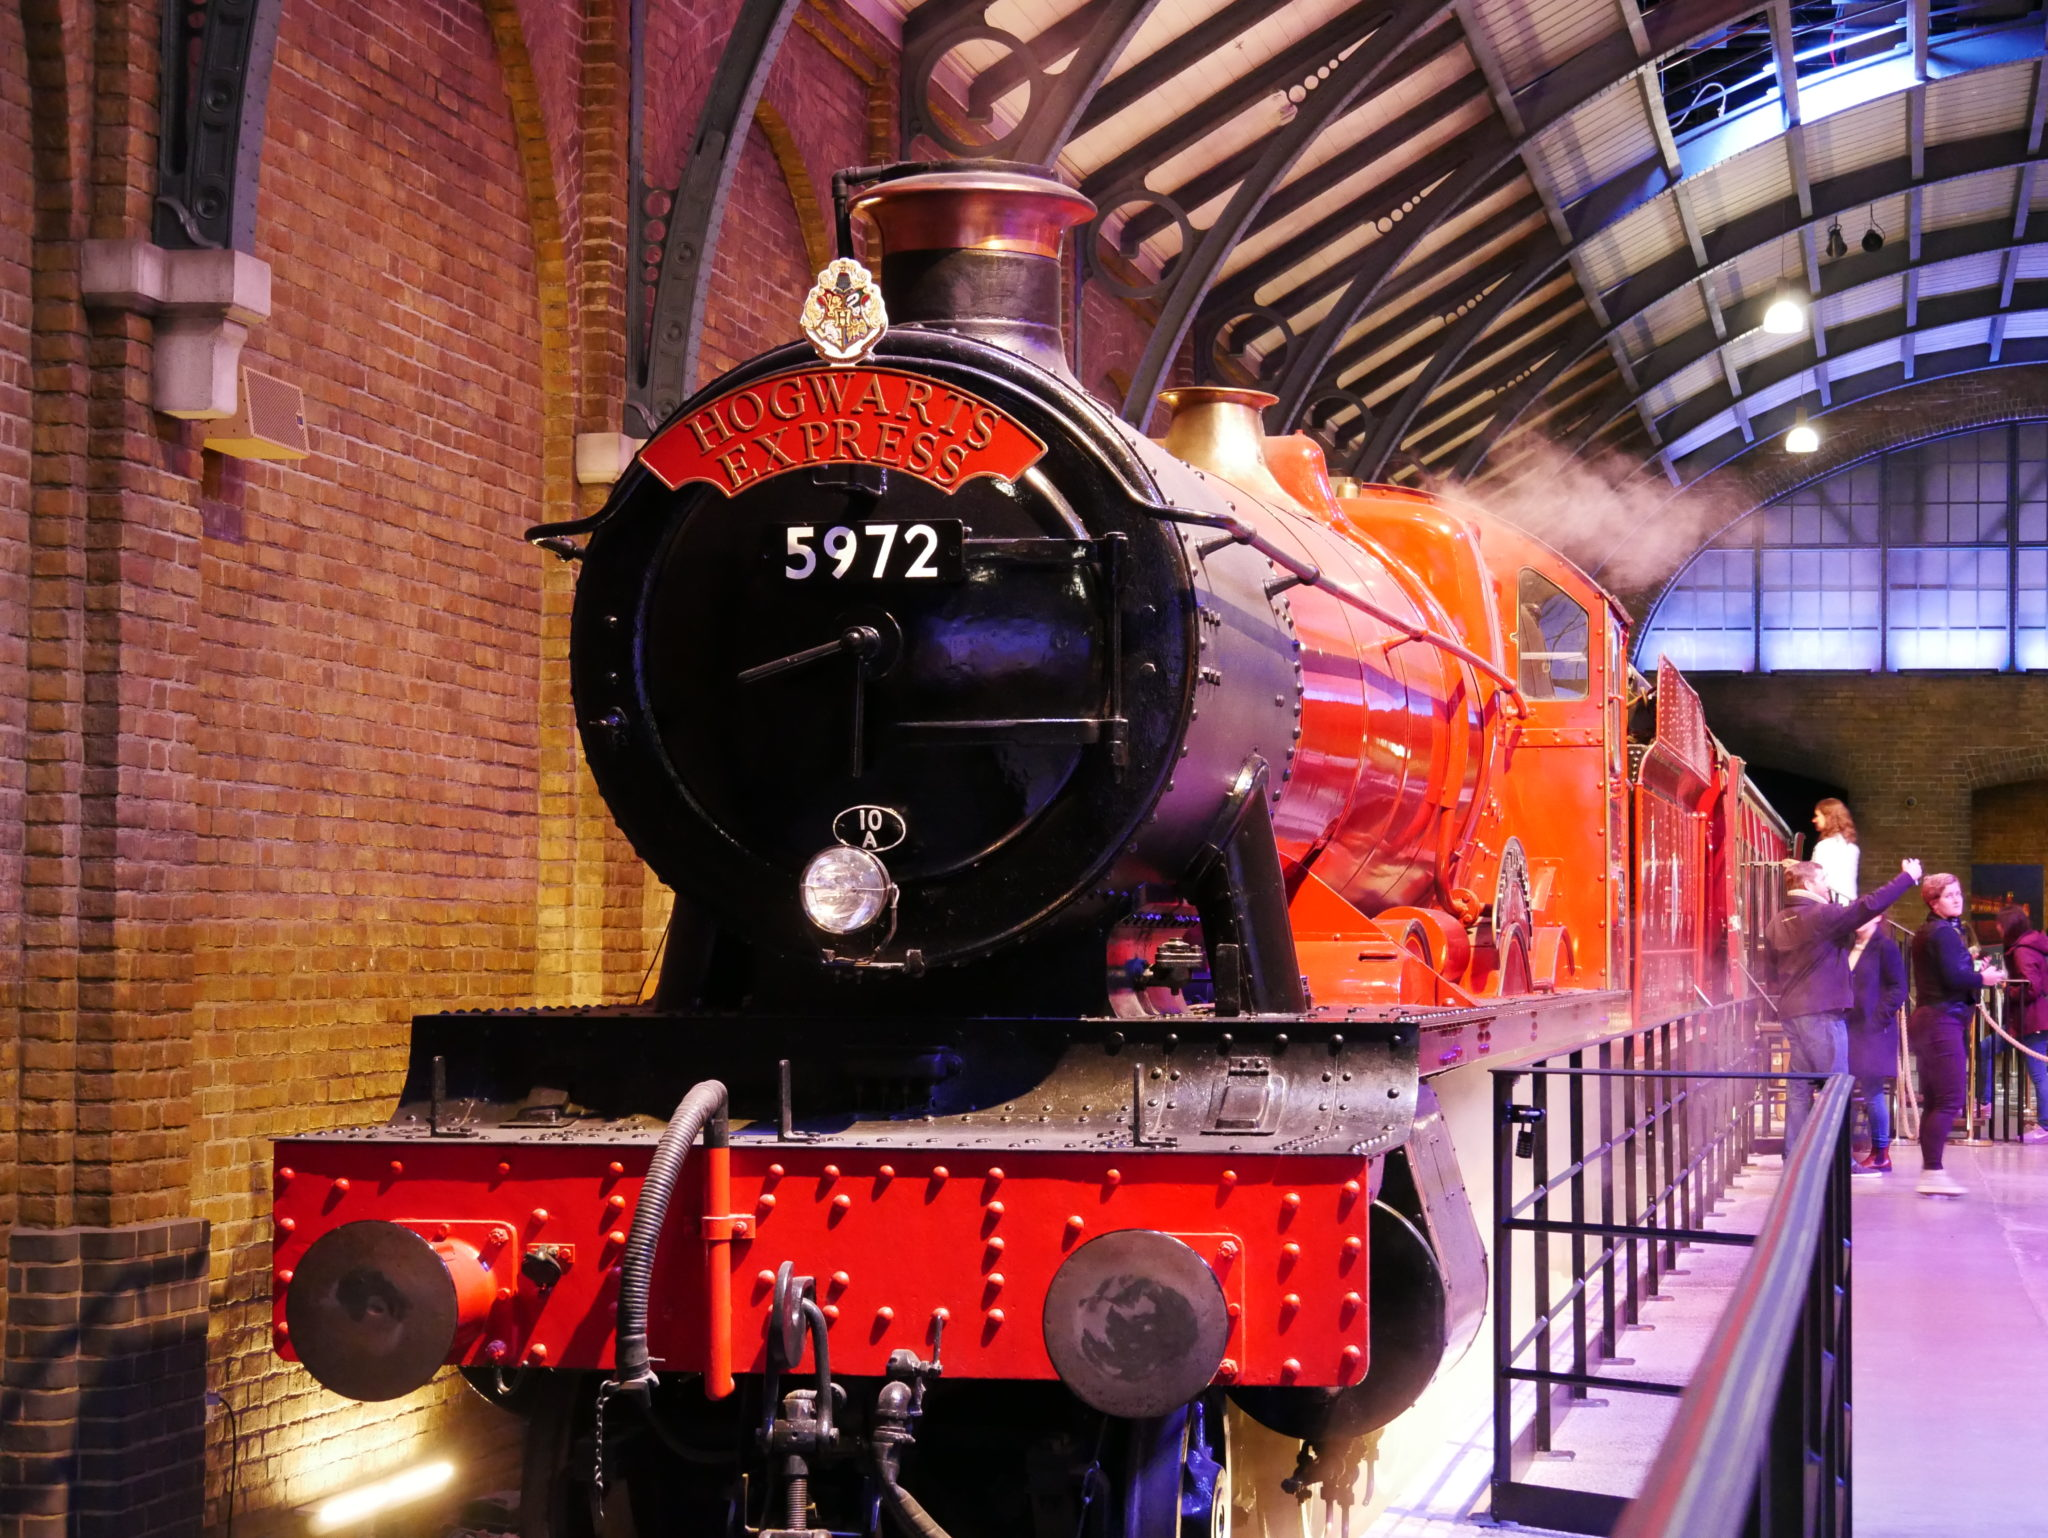 Londres : visite des studios d'Harry Potter